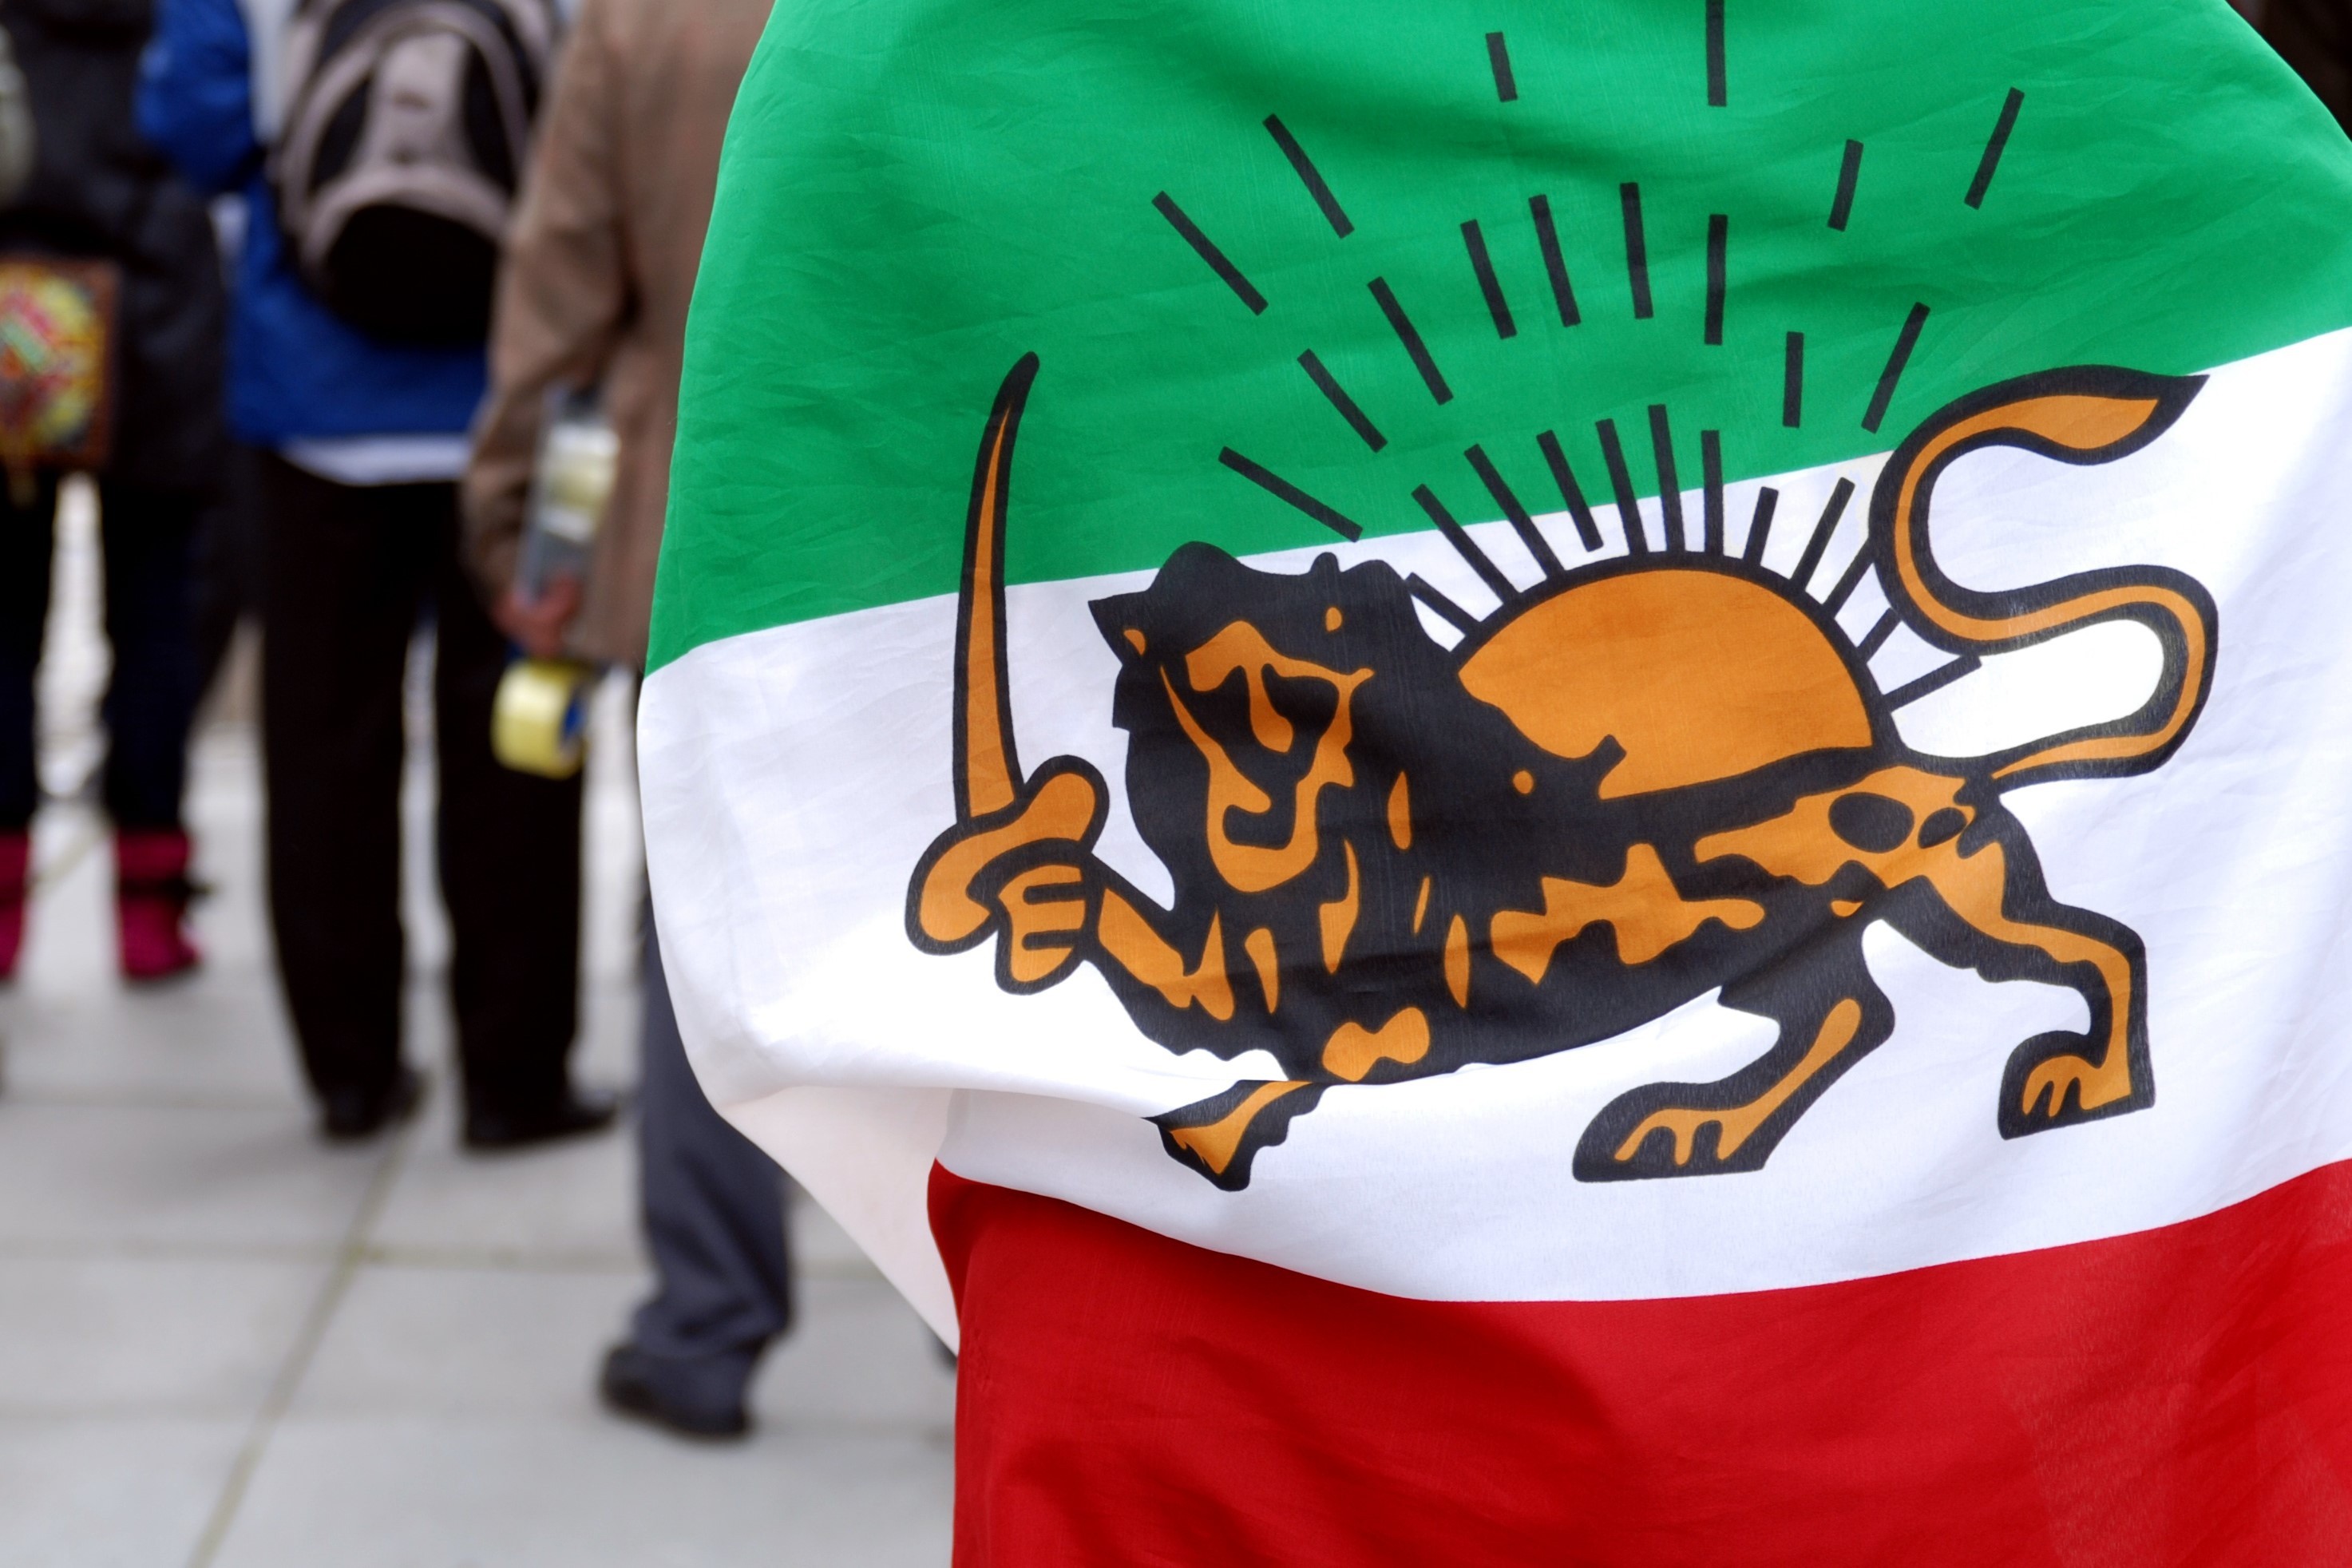 Iran Mulls Own Cryptocurrency - Reports